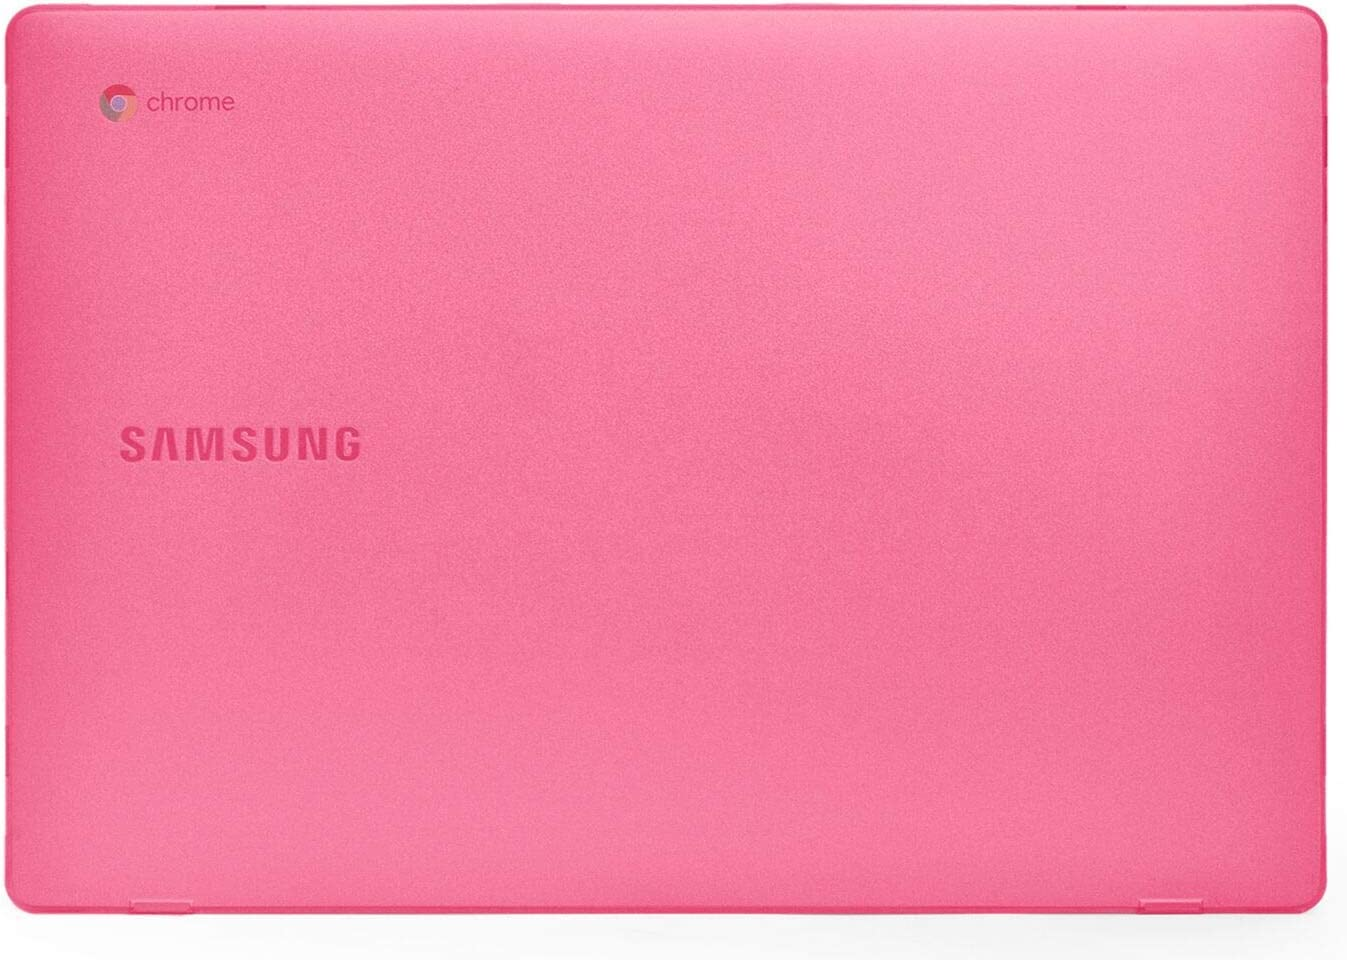 mCover Hard Shell Case for New 2020 15.6'' Samsung ChromeBook 4+ XE350XBA Series Laptop (Pink)